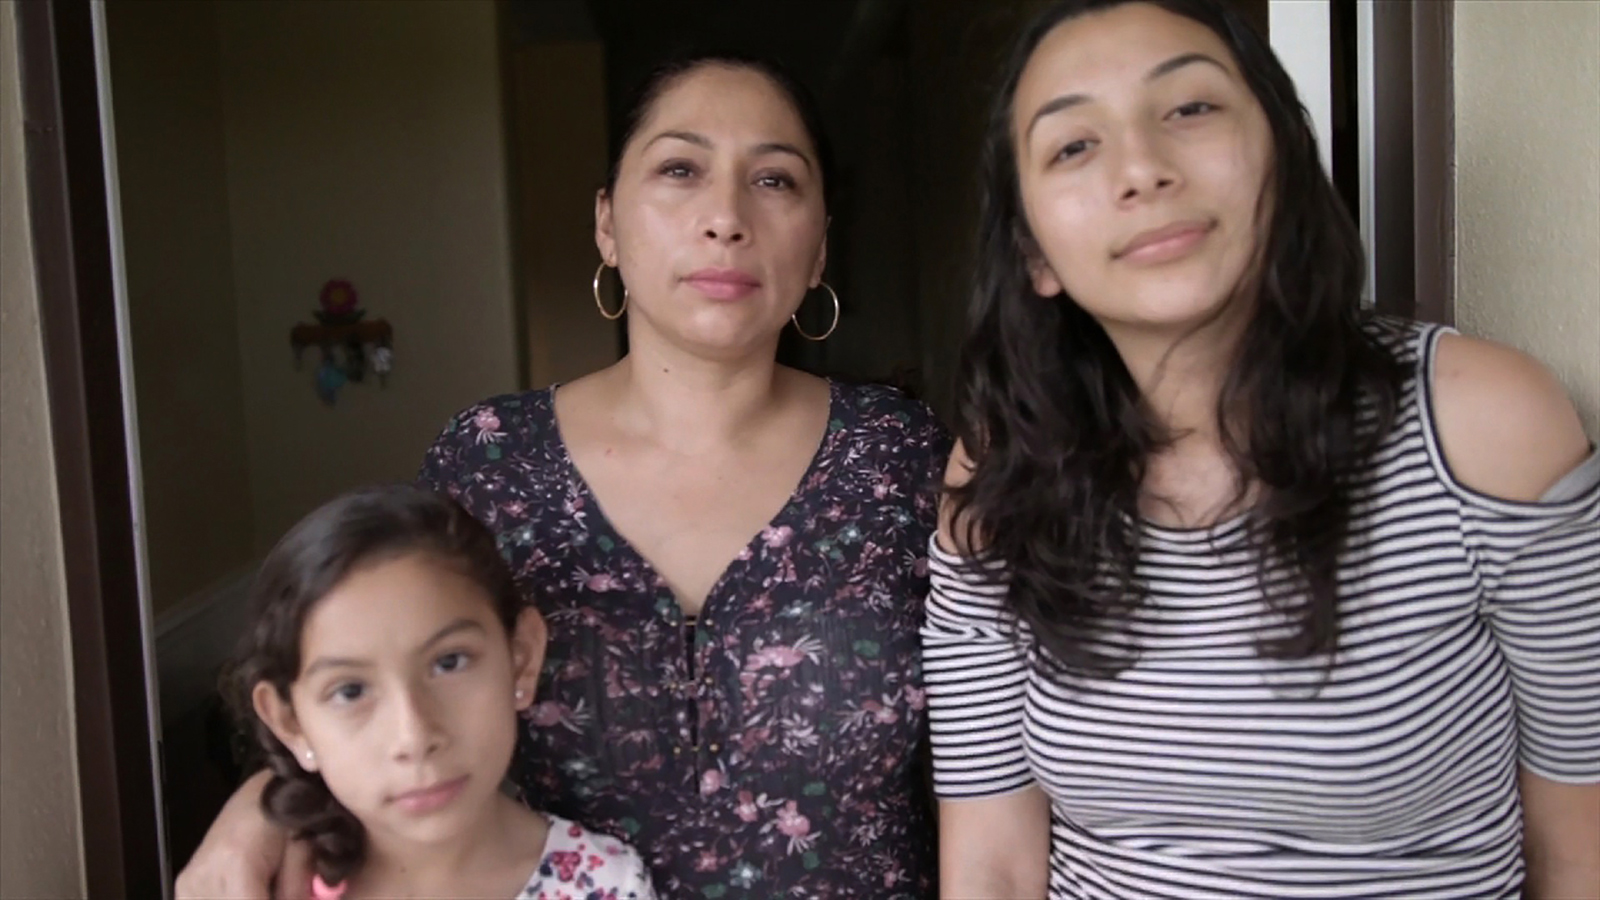 Estela Juarez, left, with her mother Alejandra Juarez and sister Pamela Juarez.